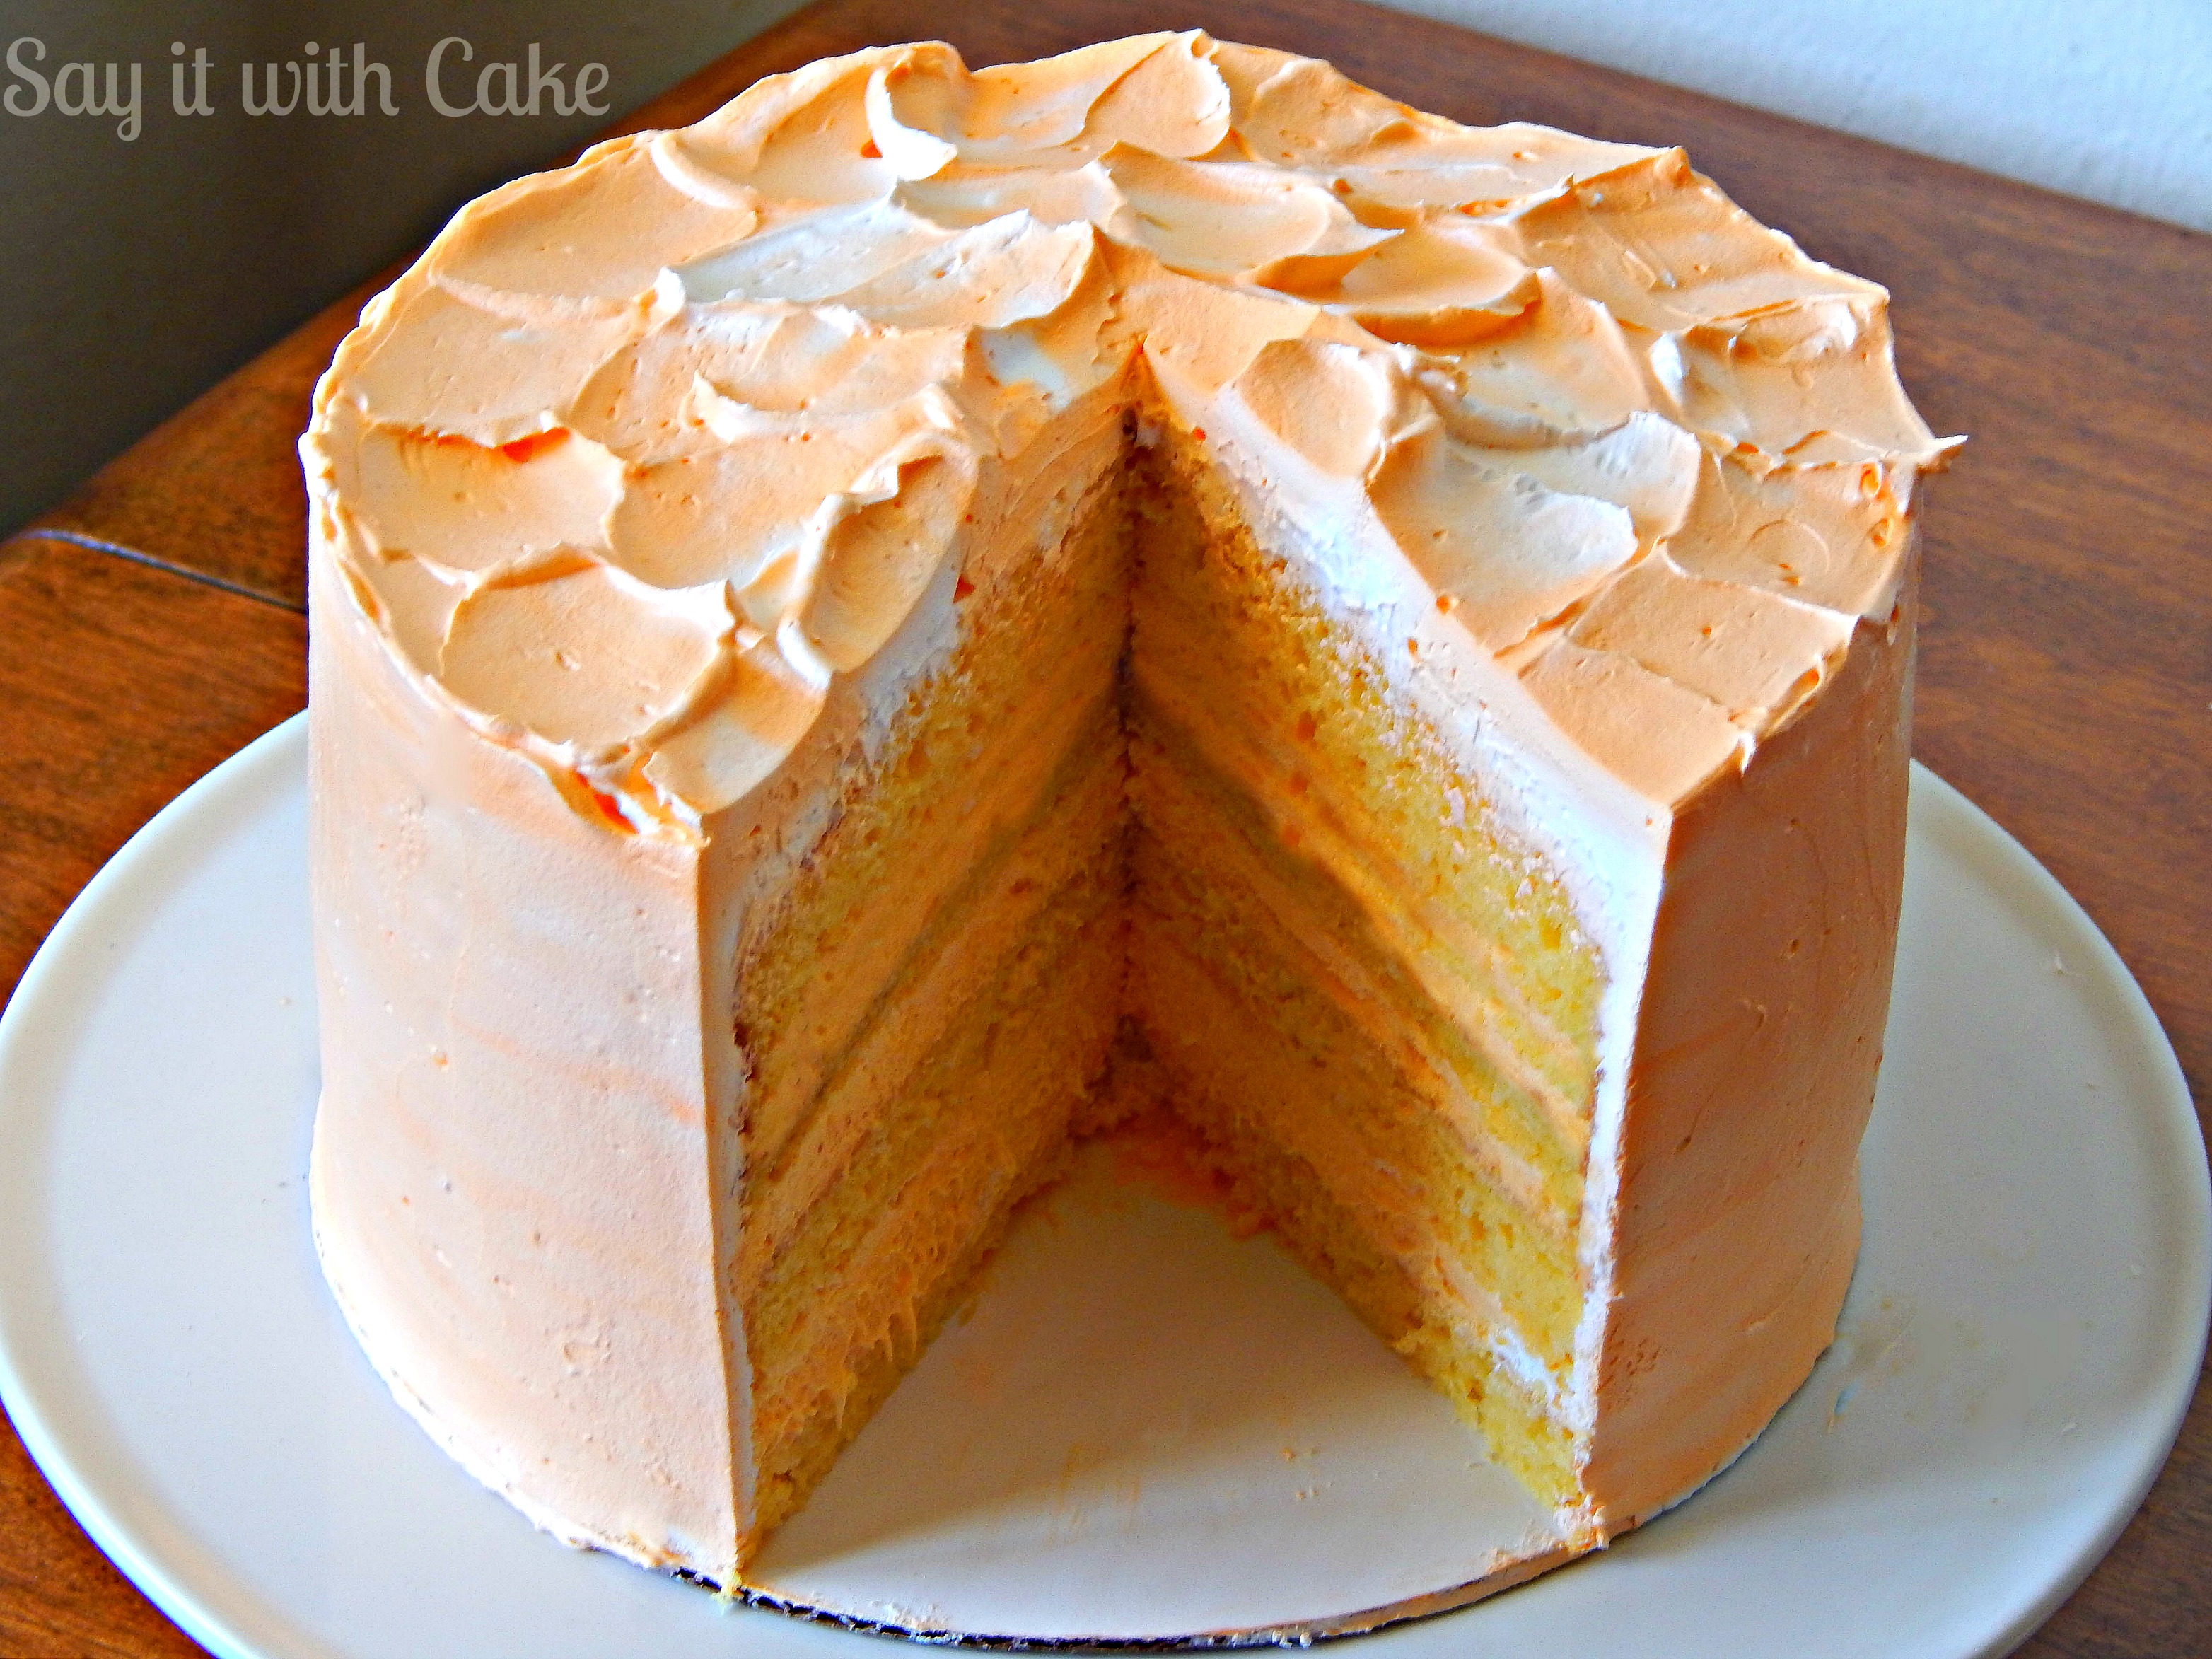 This orange dreamsicle cake tastes just like an orange dreamsicle bar ...